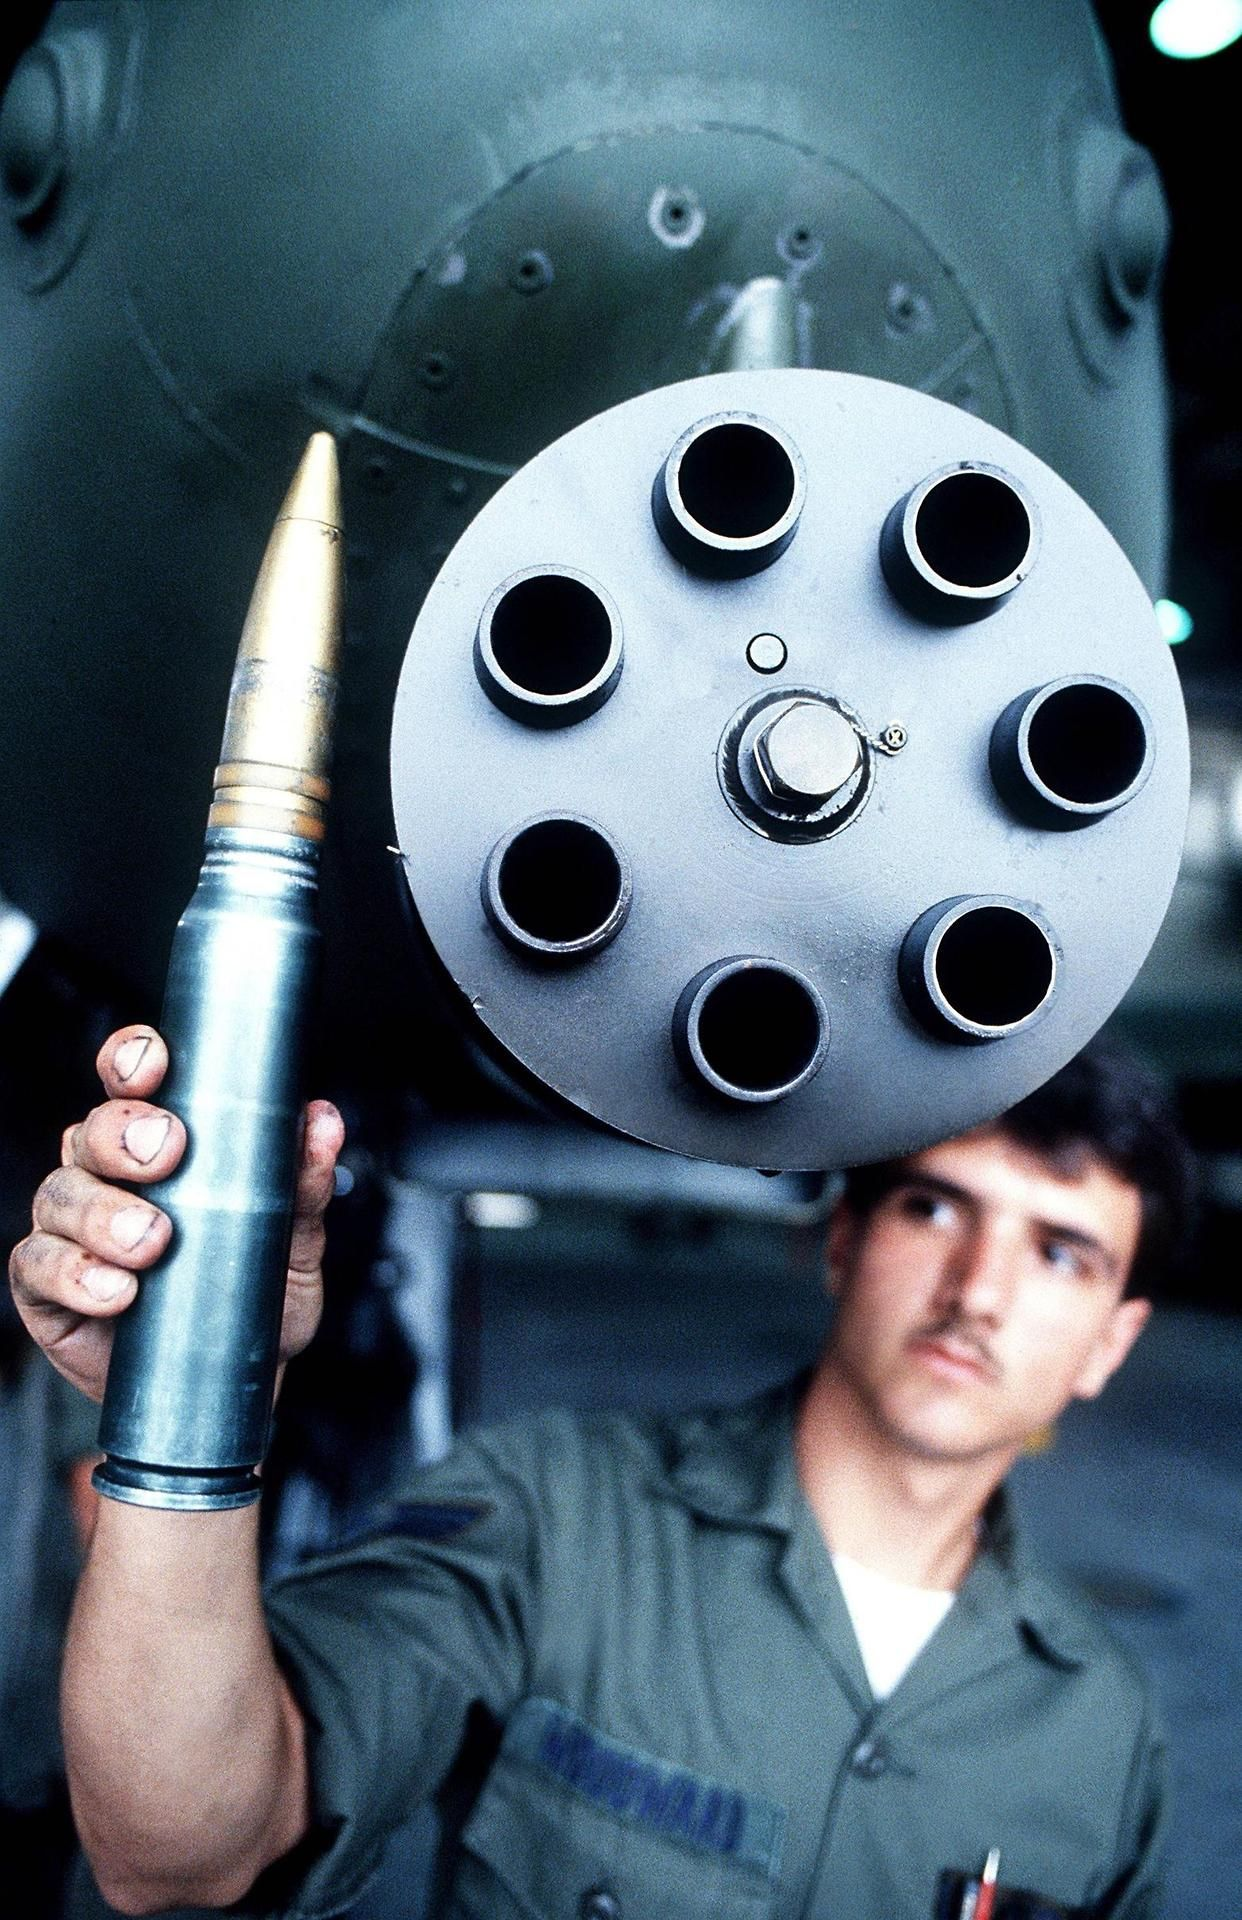 A 30mm AP round. The GAU8 'Maxigun' fires these at at up